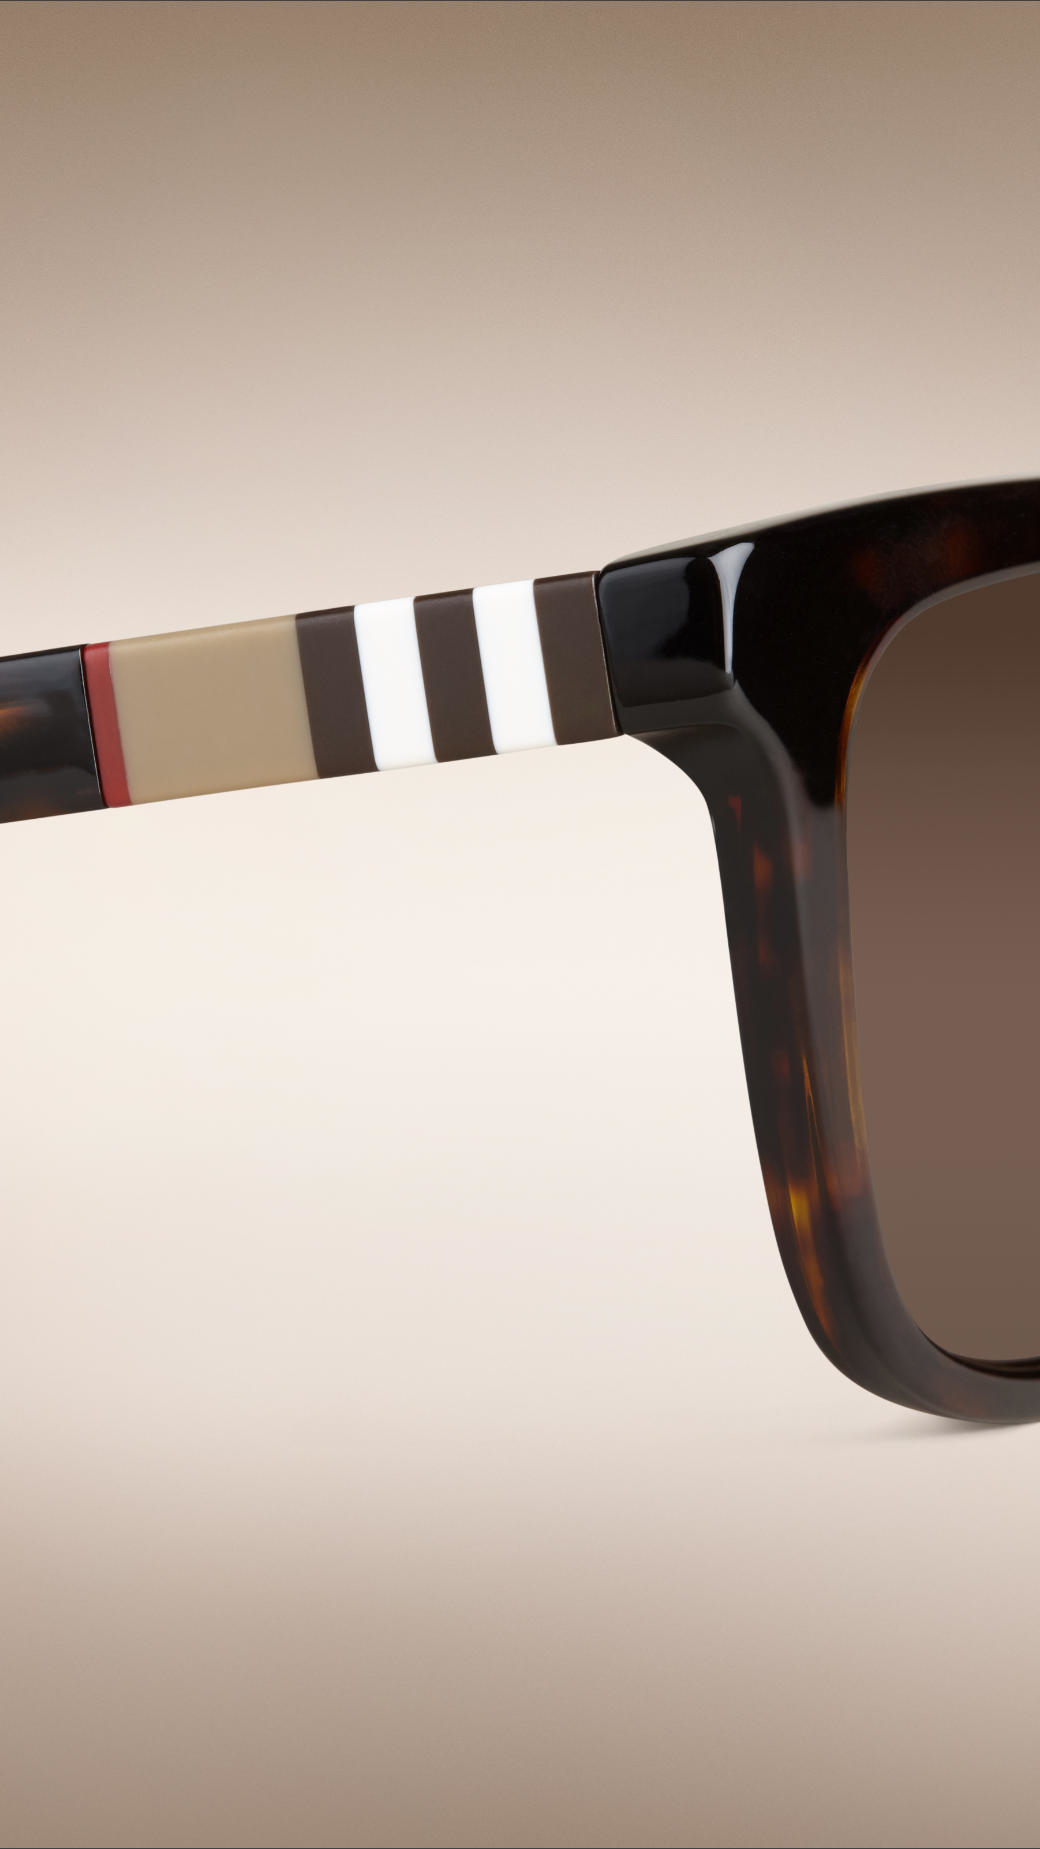 6730a4b5902 Lyst - Burberry Square Frame Check Detail Sunglasses Brown in Black ...